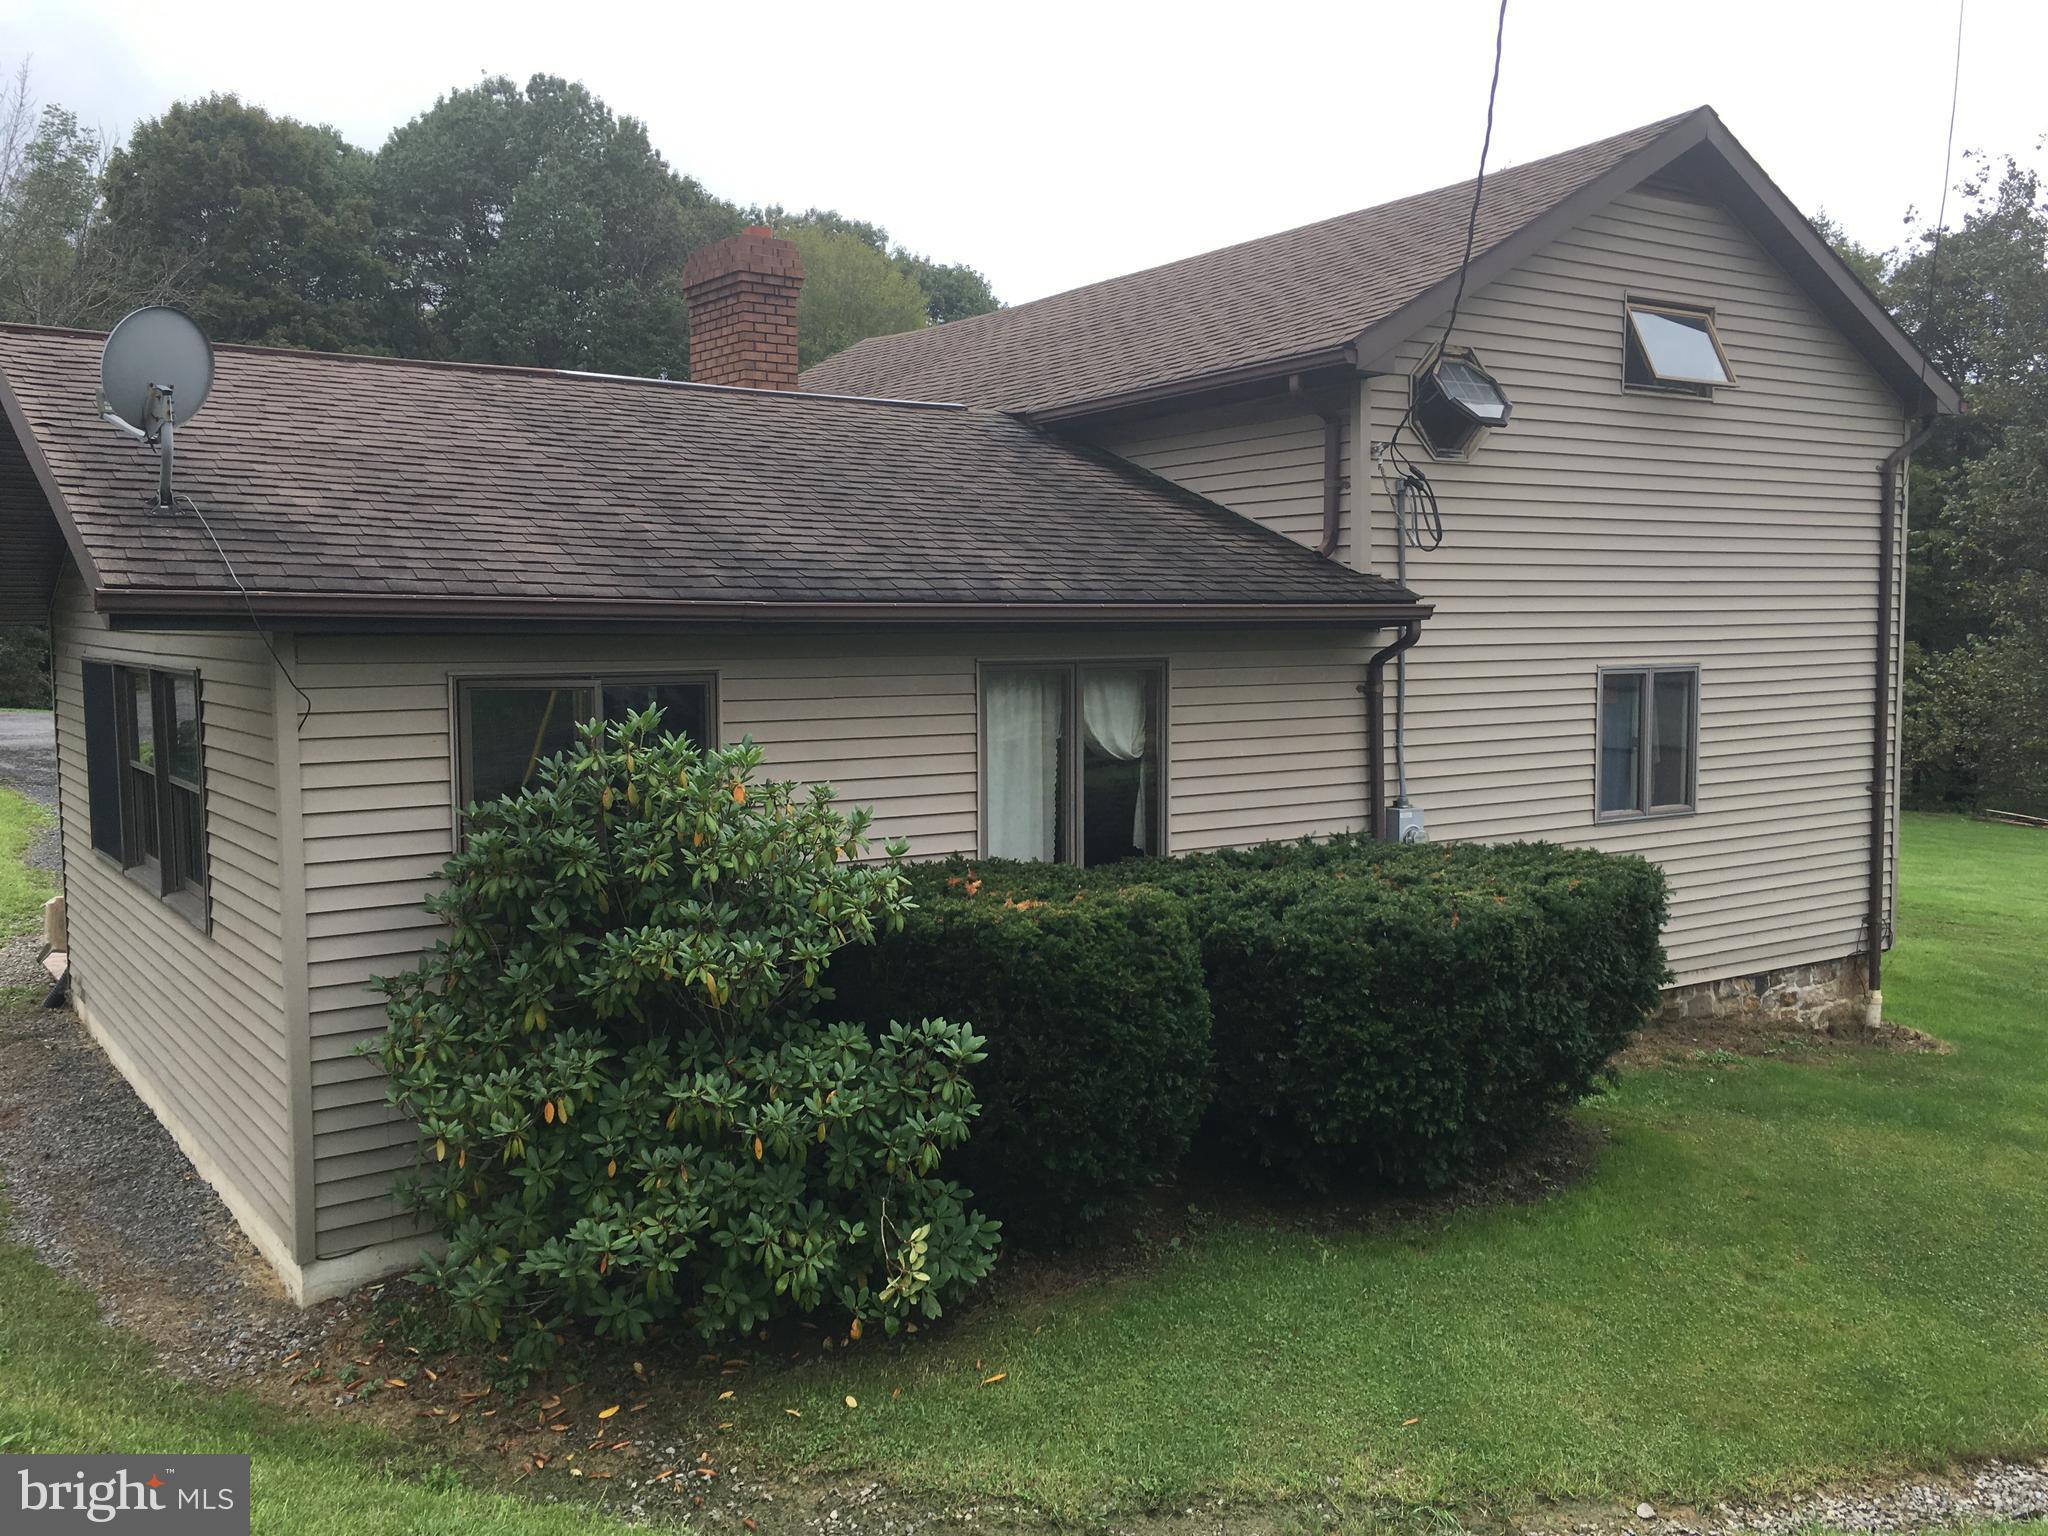 11515 CABOOSE ROAD, MIDLOTHIAN, MD 21543